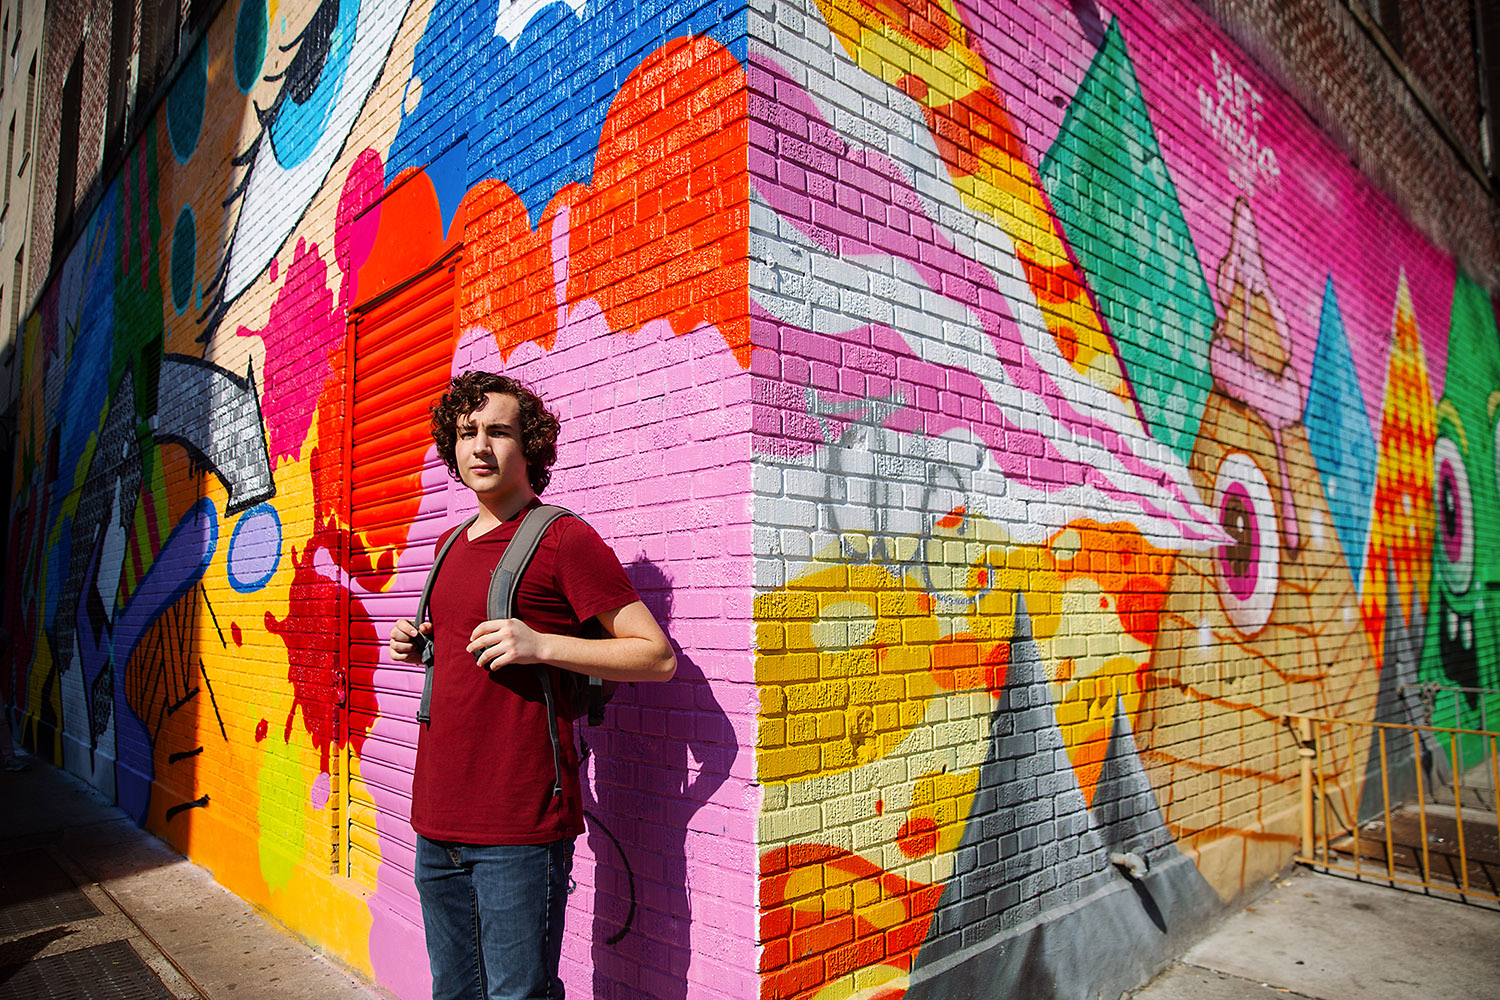 Teenaged boy in front of a graffiti mural in NYC